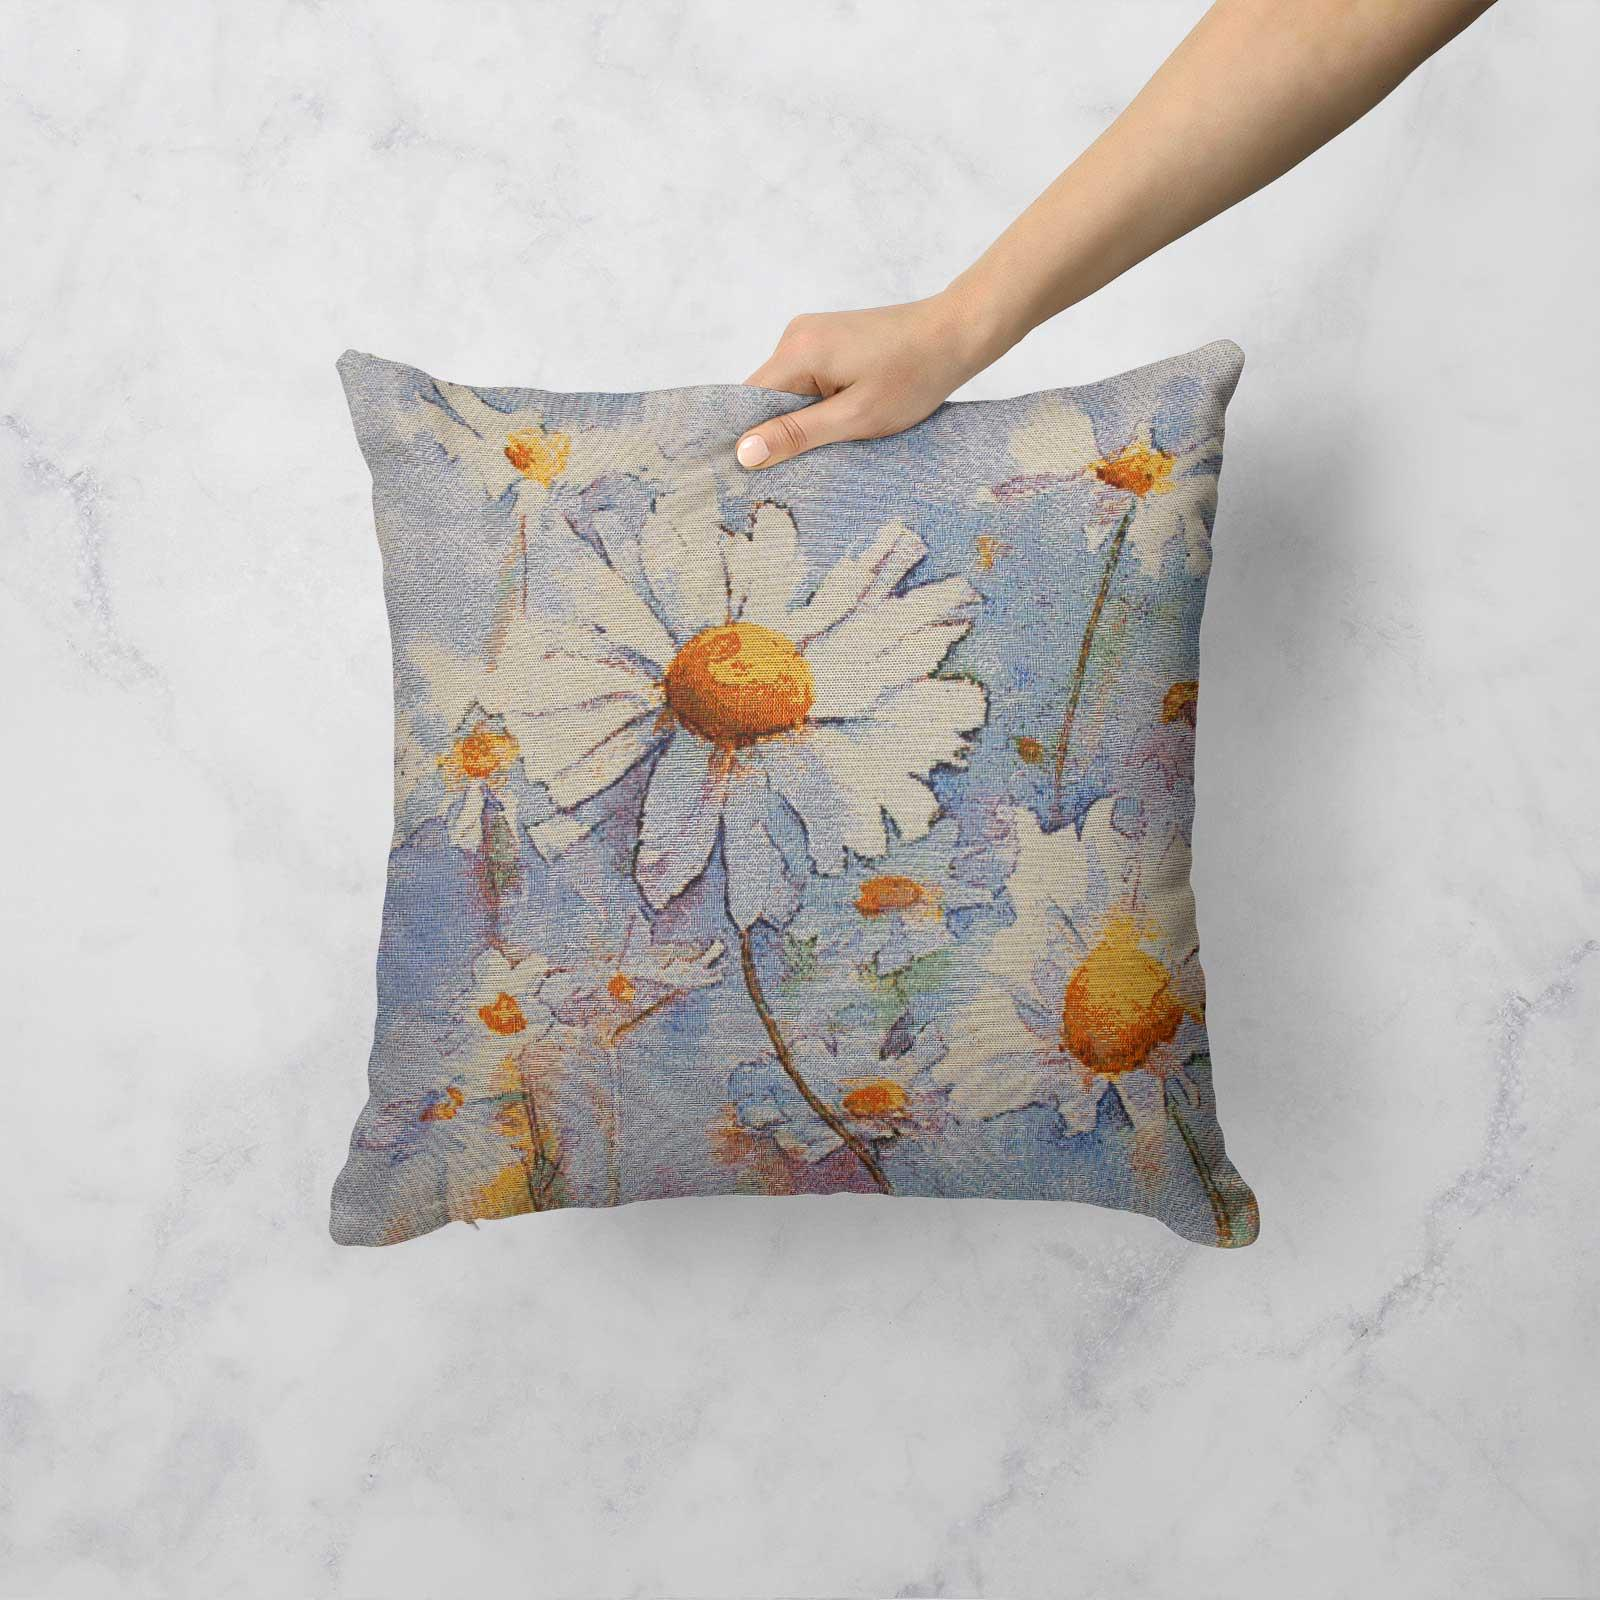 Tapestry-Cushion-Covers-Vintage-Pillow-Cover-Collection-18-034-45cm-Filled-Cushions thumbnail 40